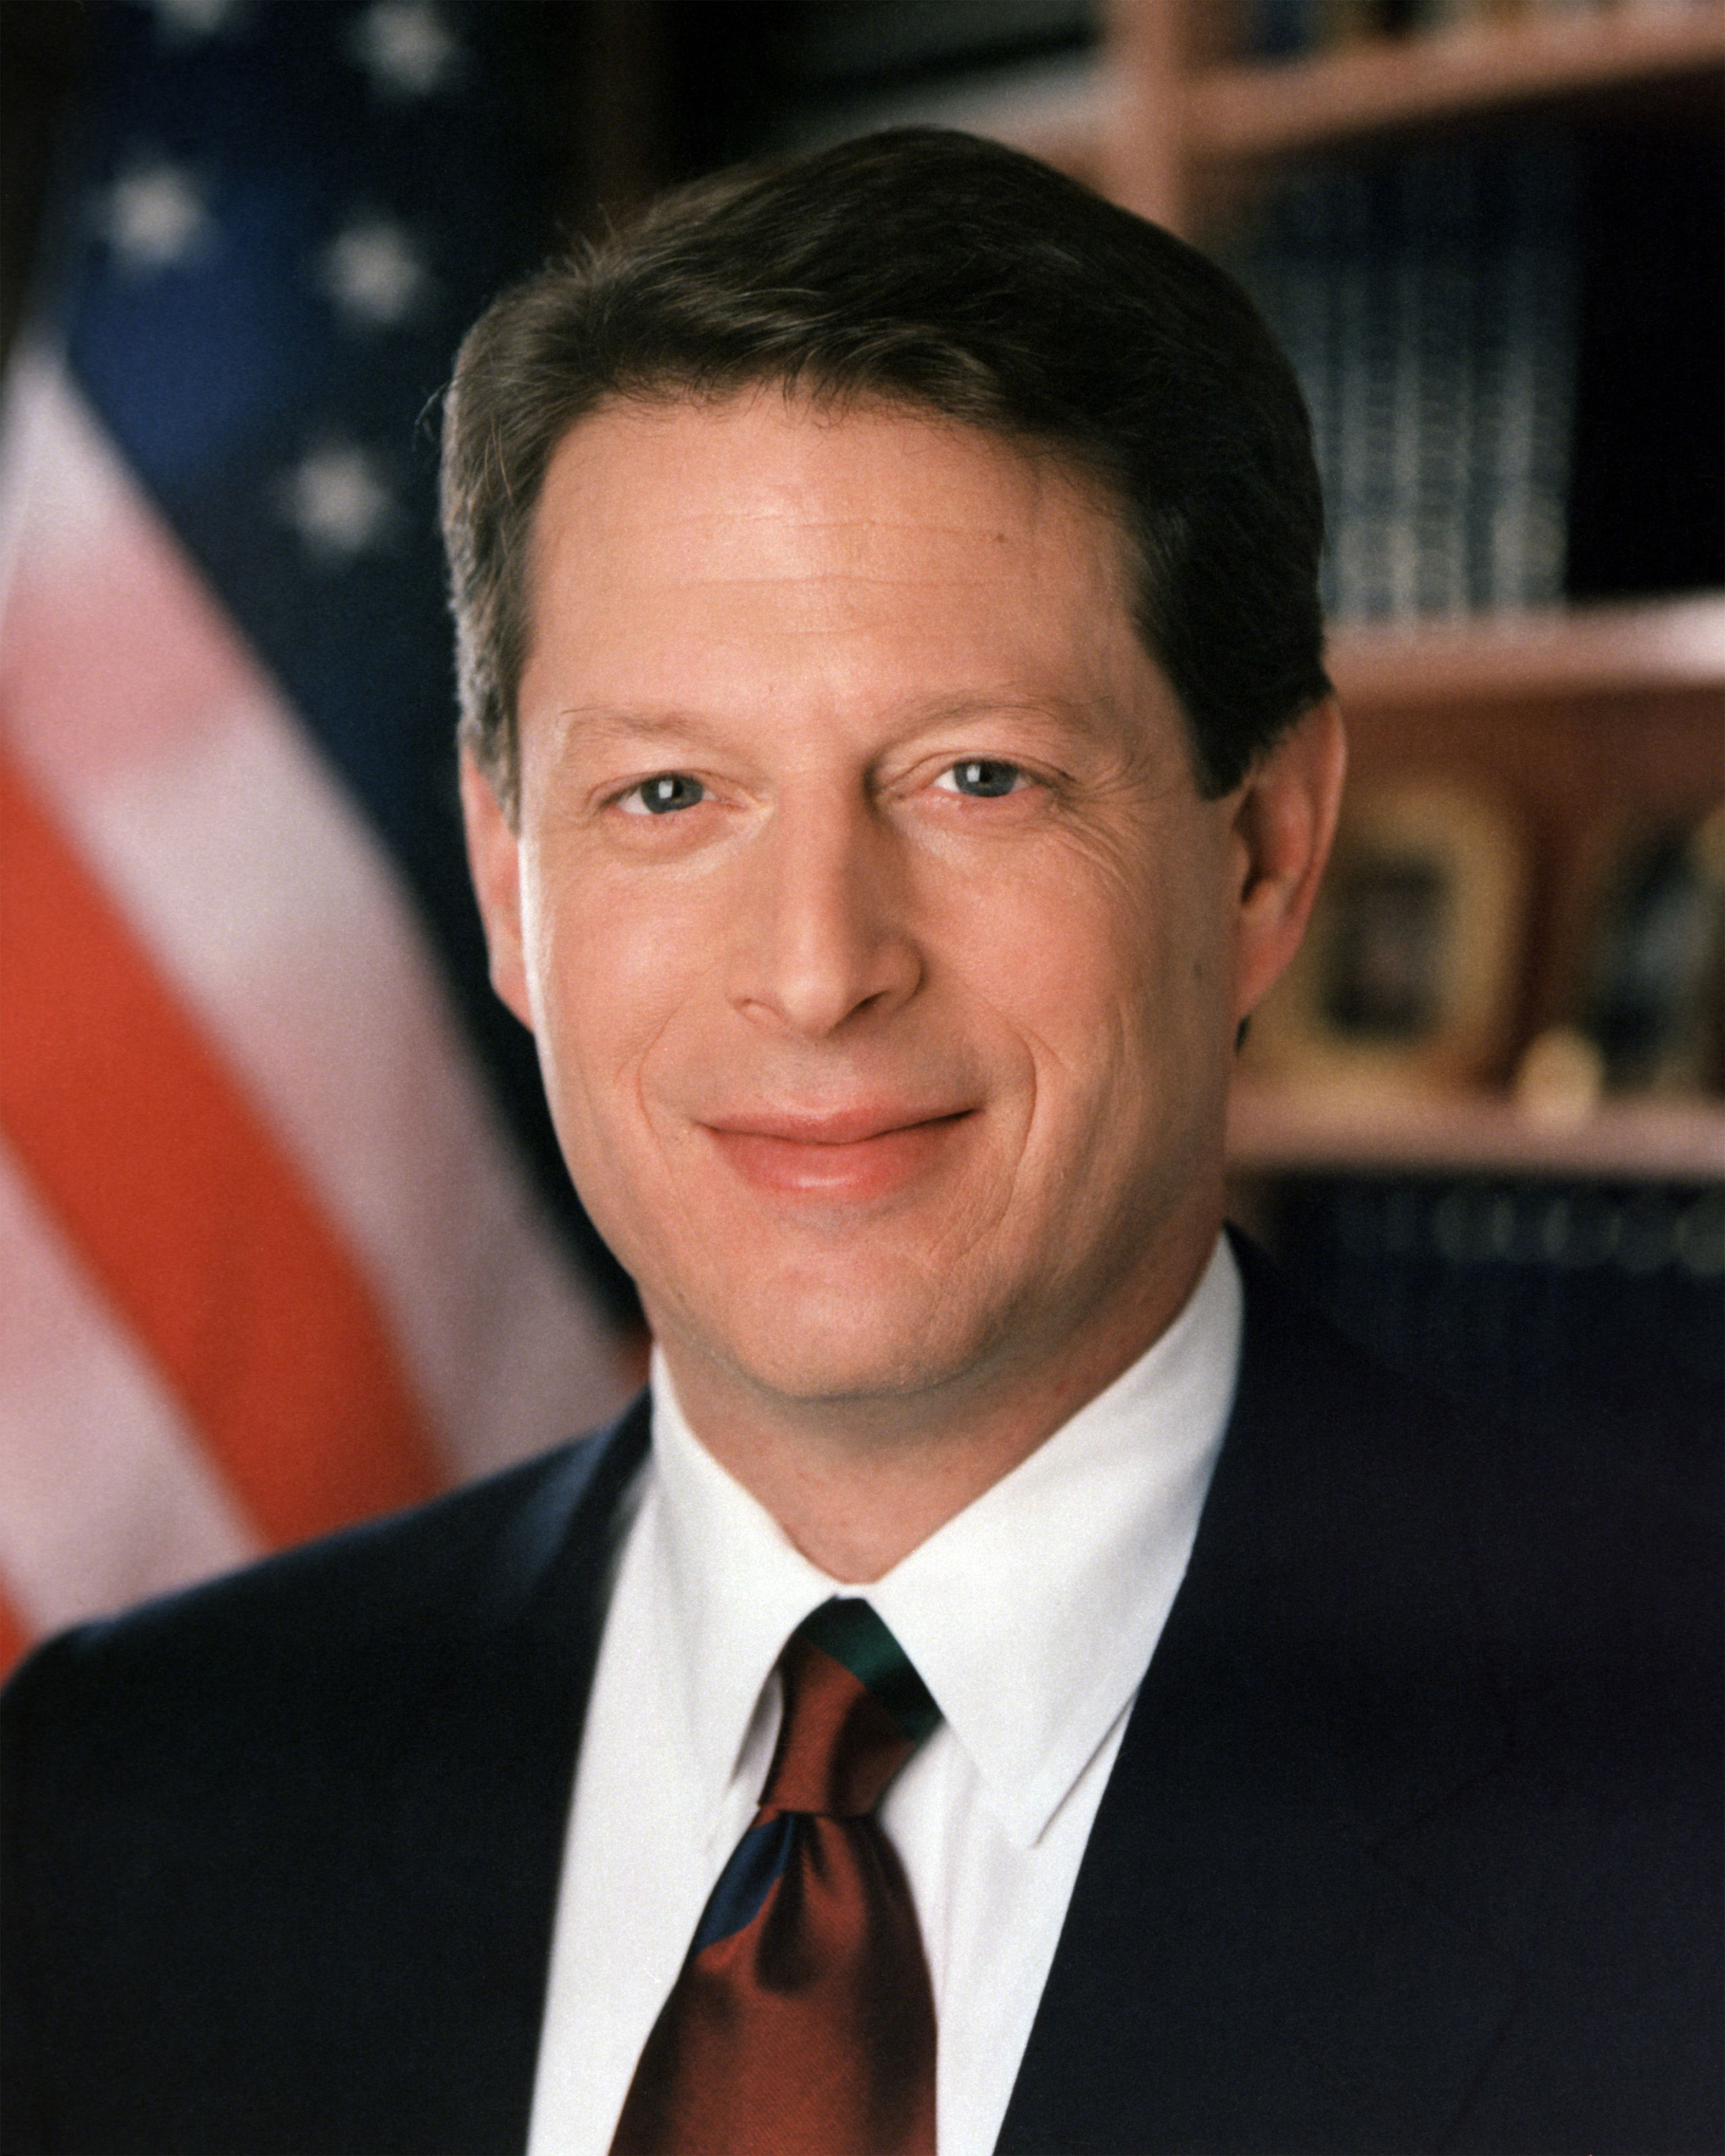 File:Al Gore, Vice President of the United States, official ...